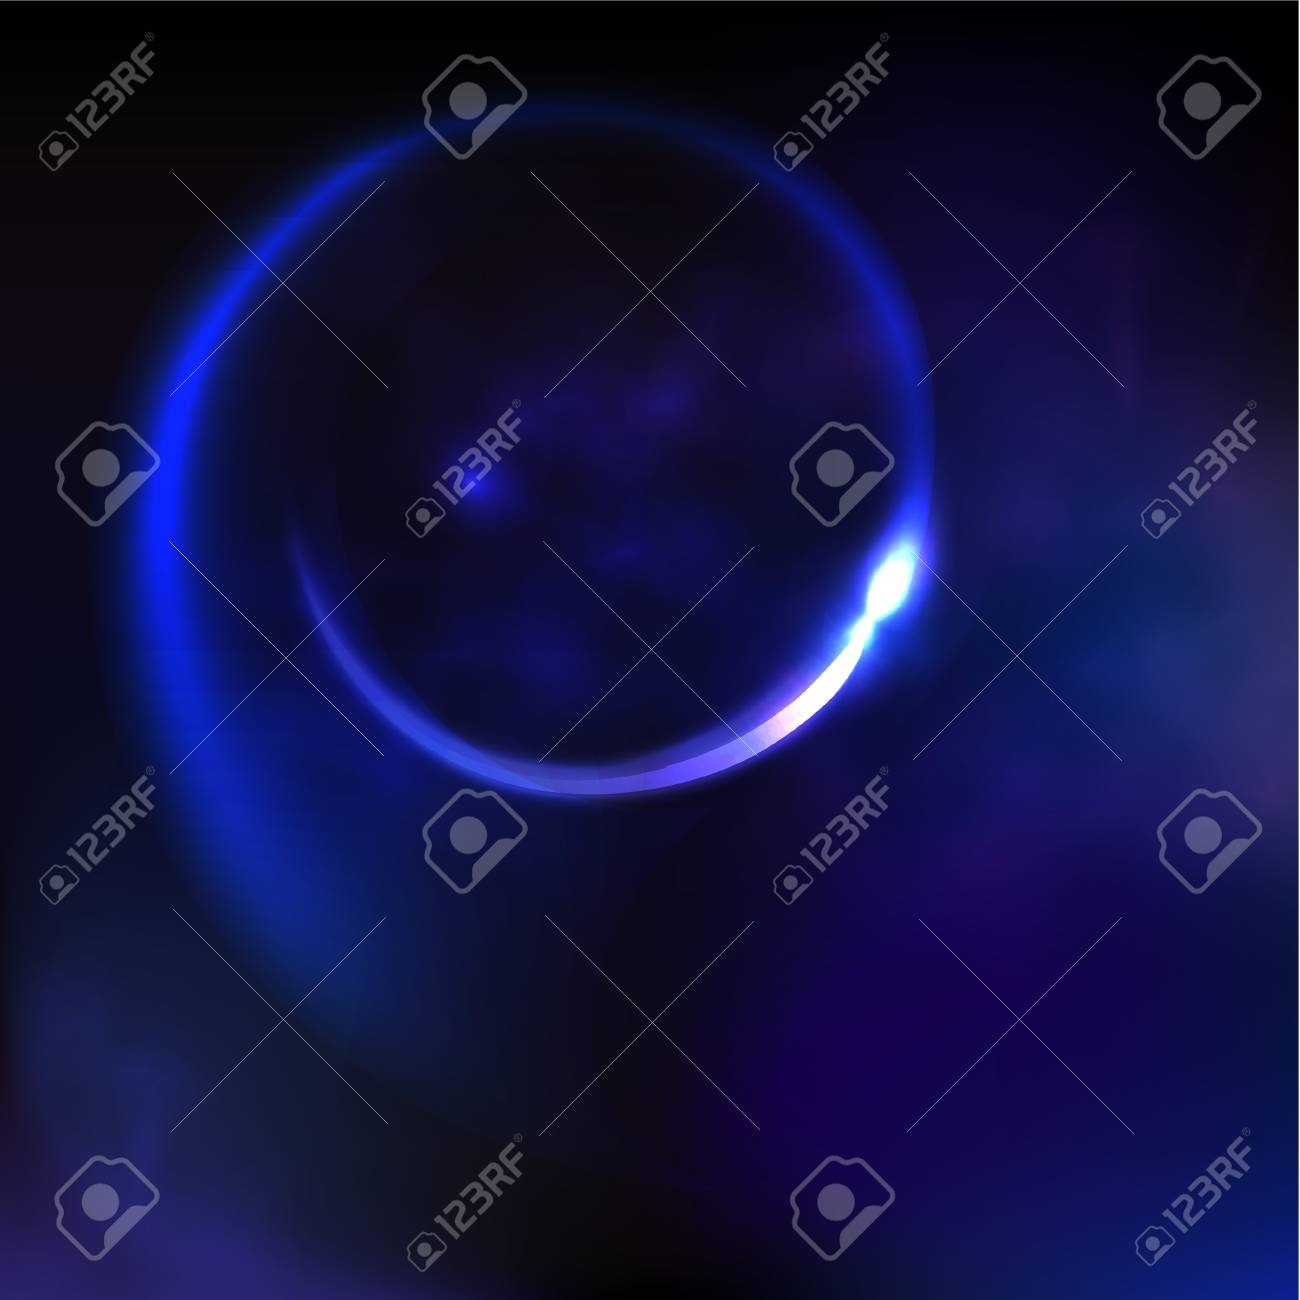 Abstract space background Stock Vector - 20230723